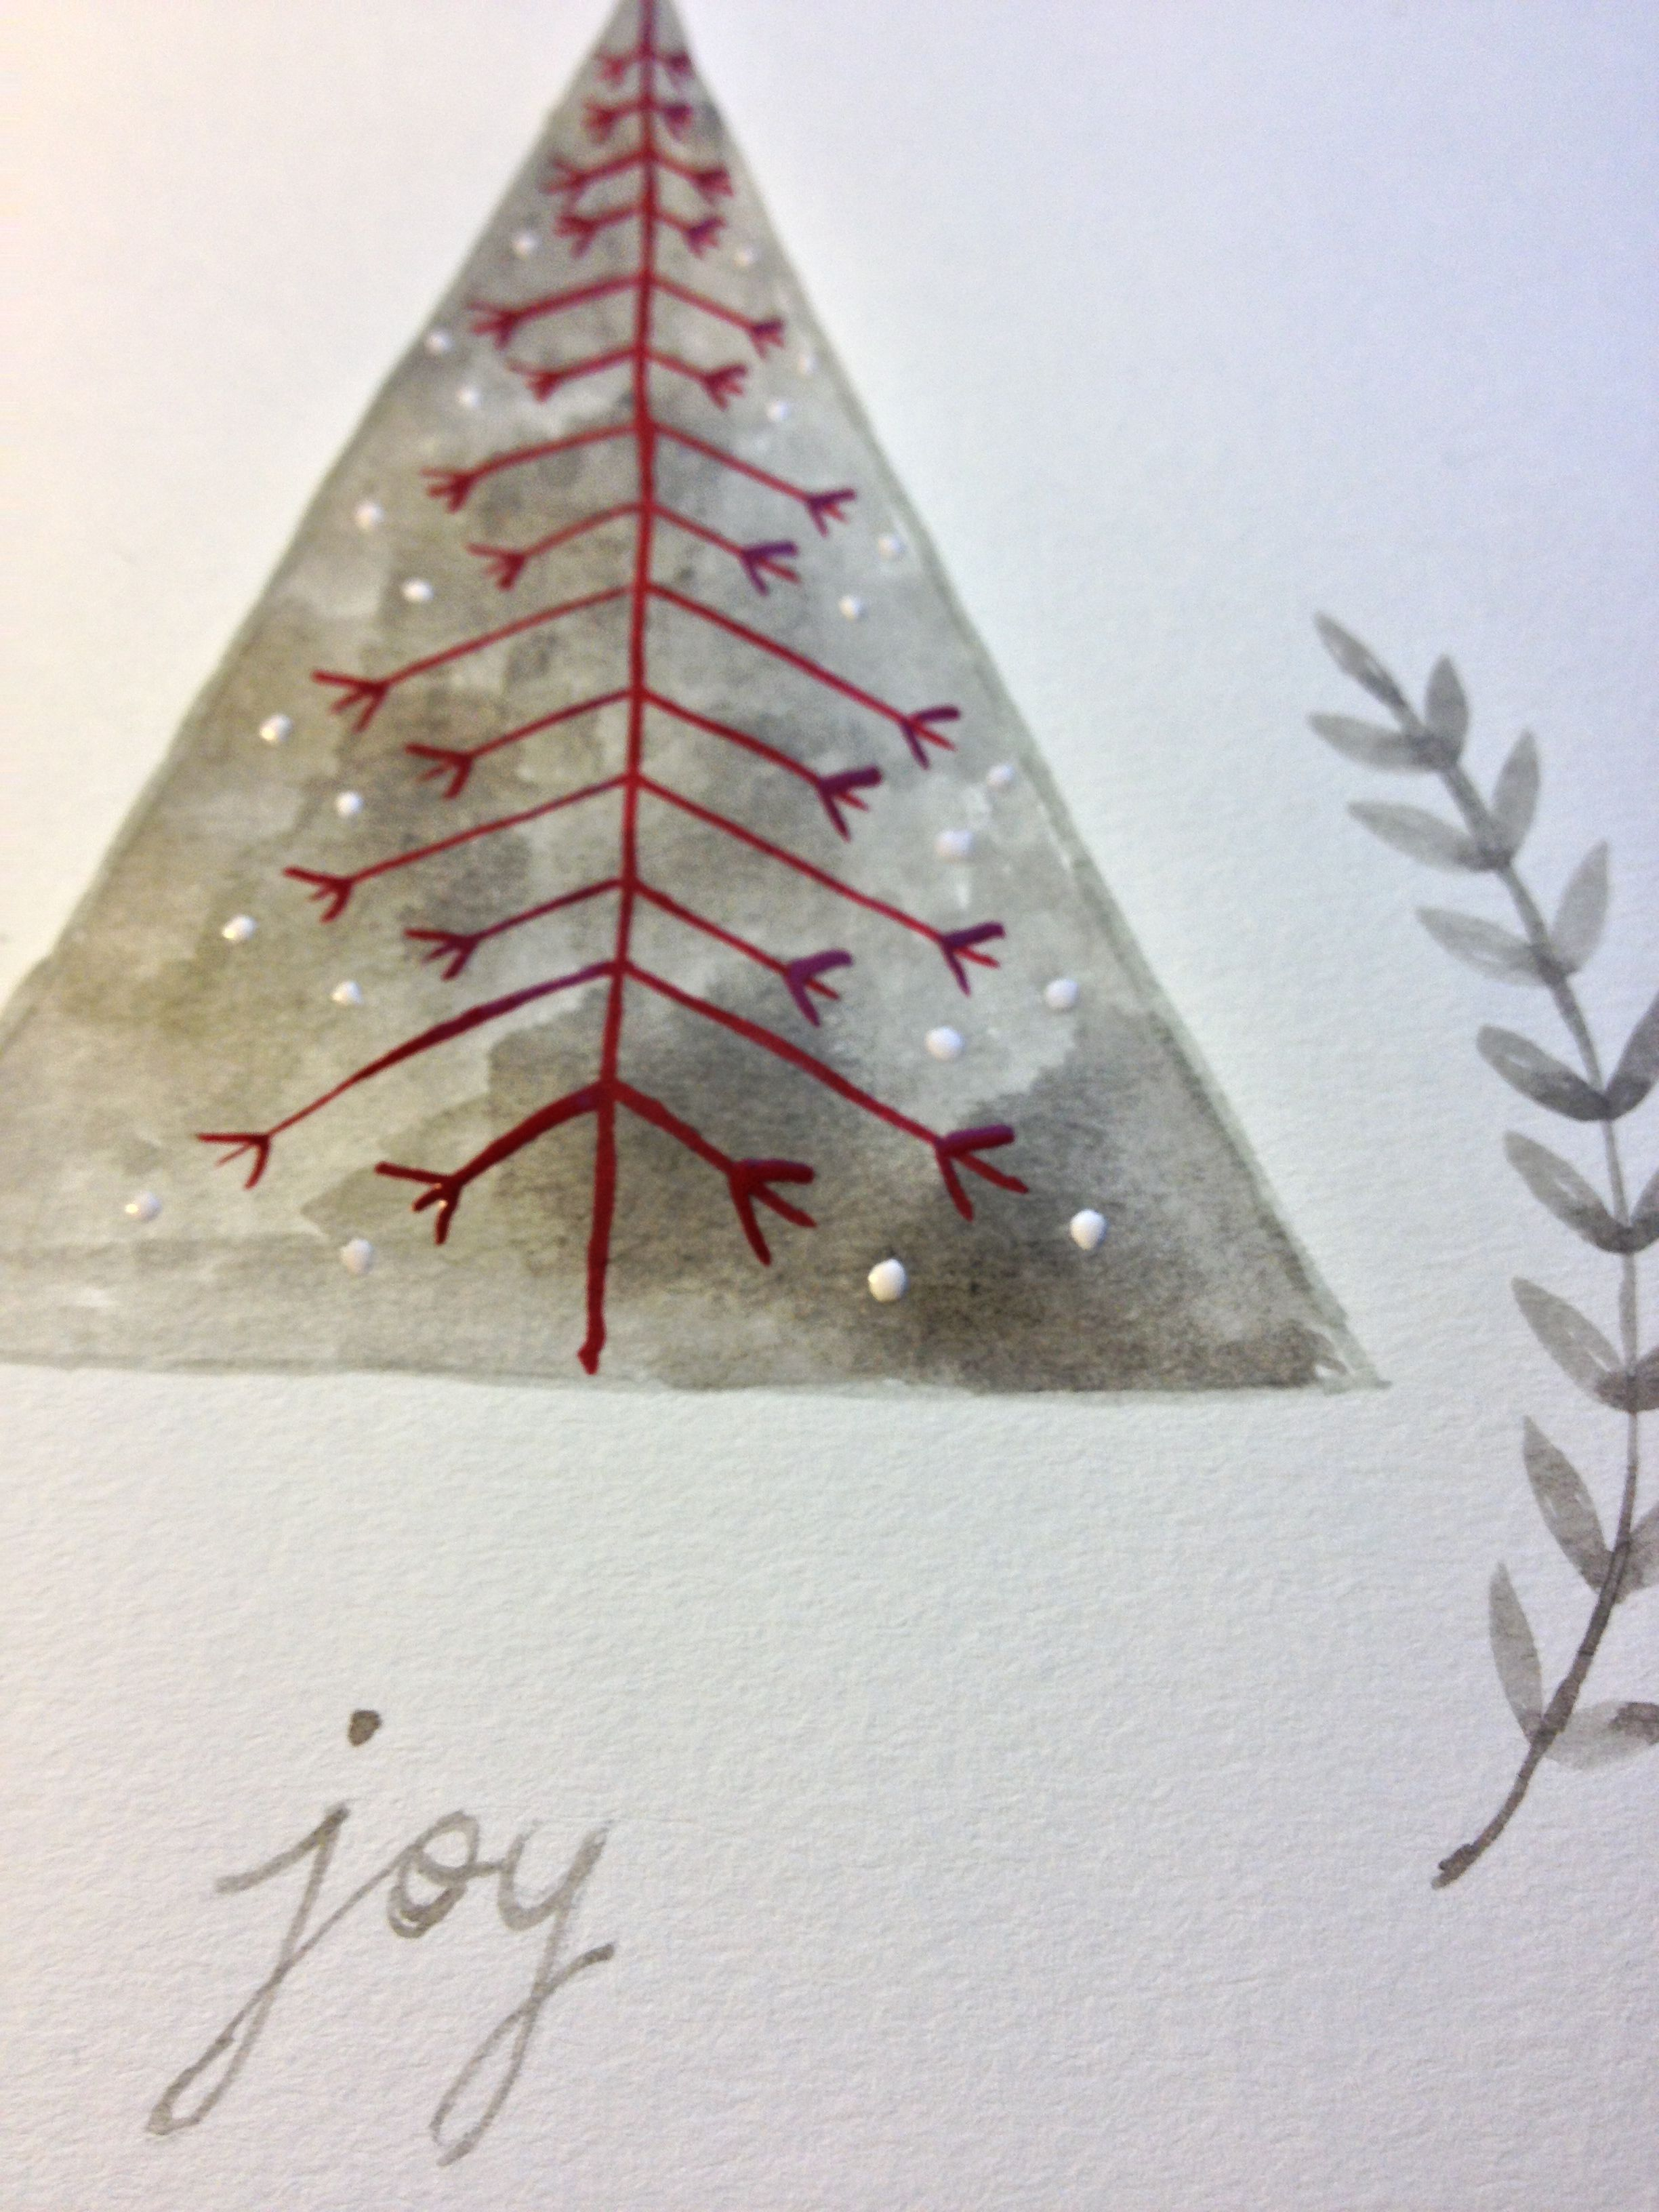 Joy Christmas Card Drawing This Board Is Pre Scan And Fiddle Ink Geometric